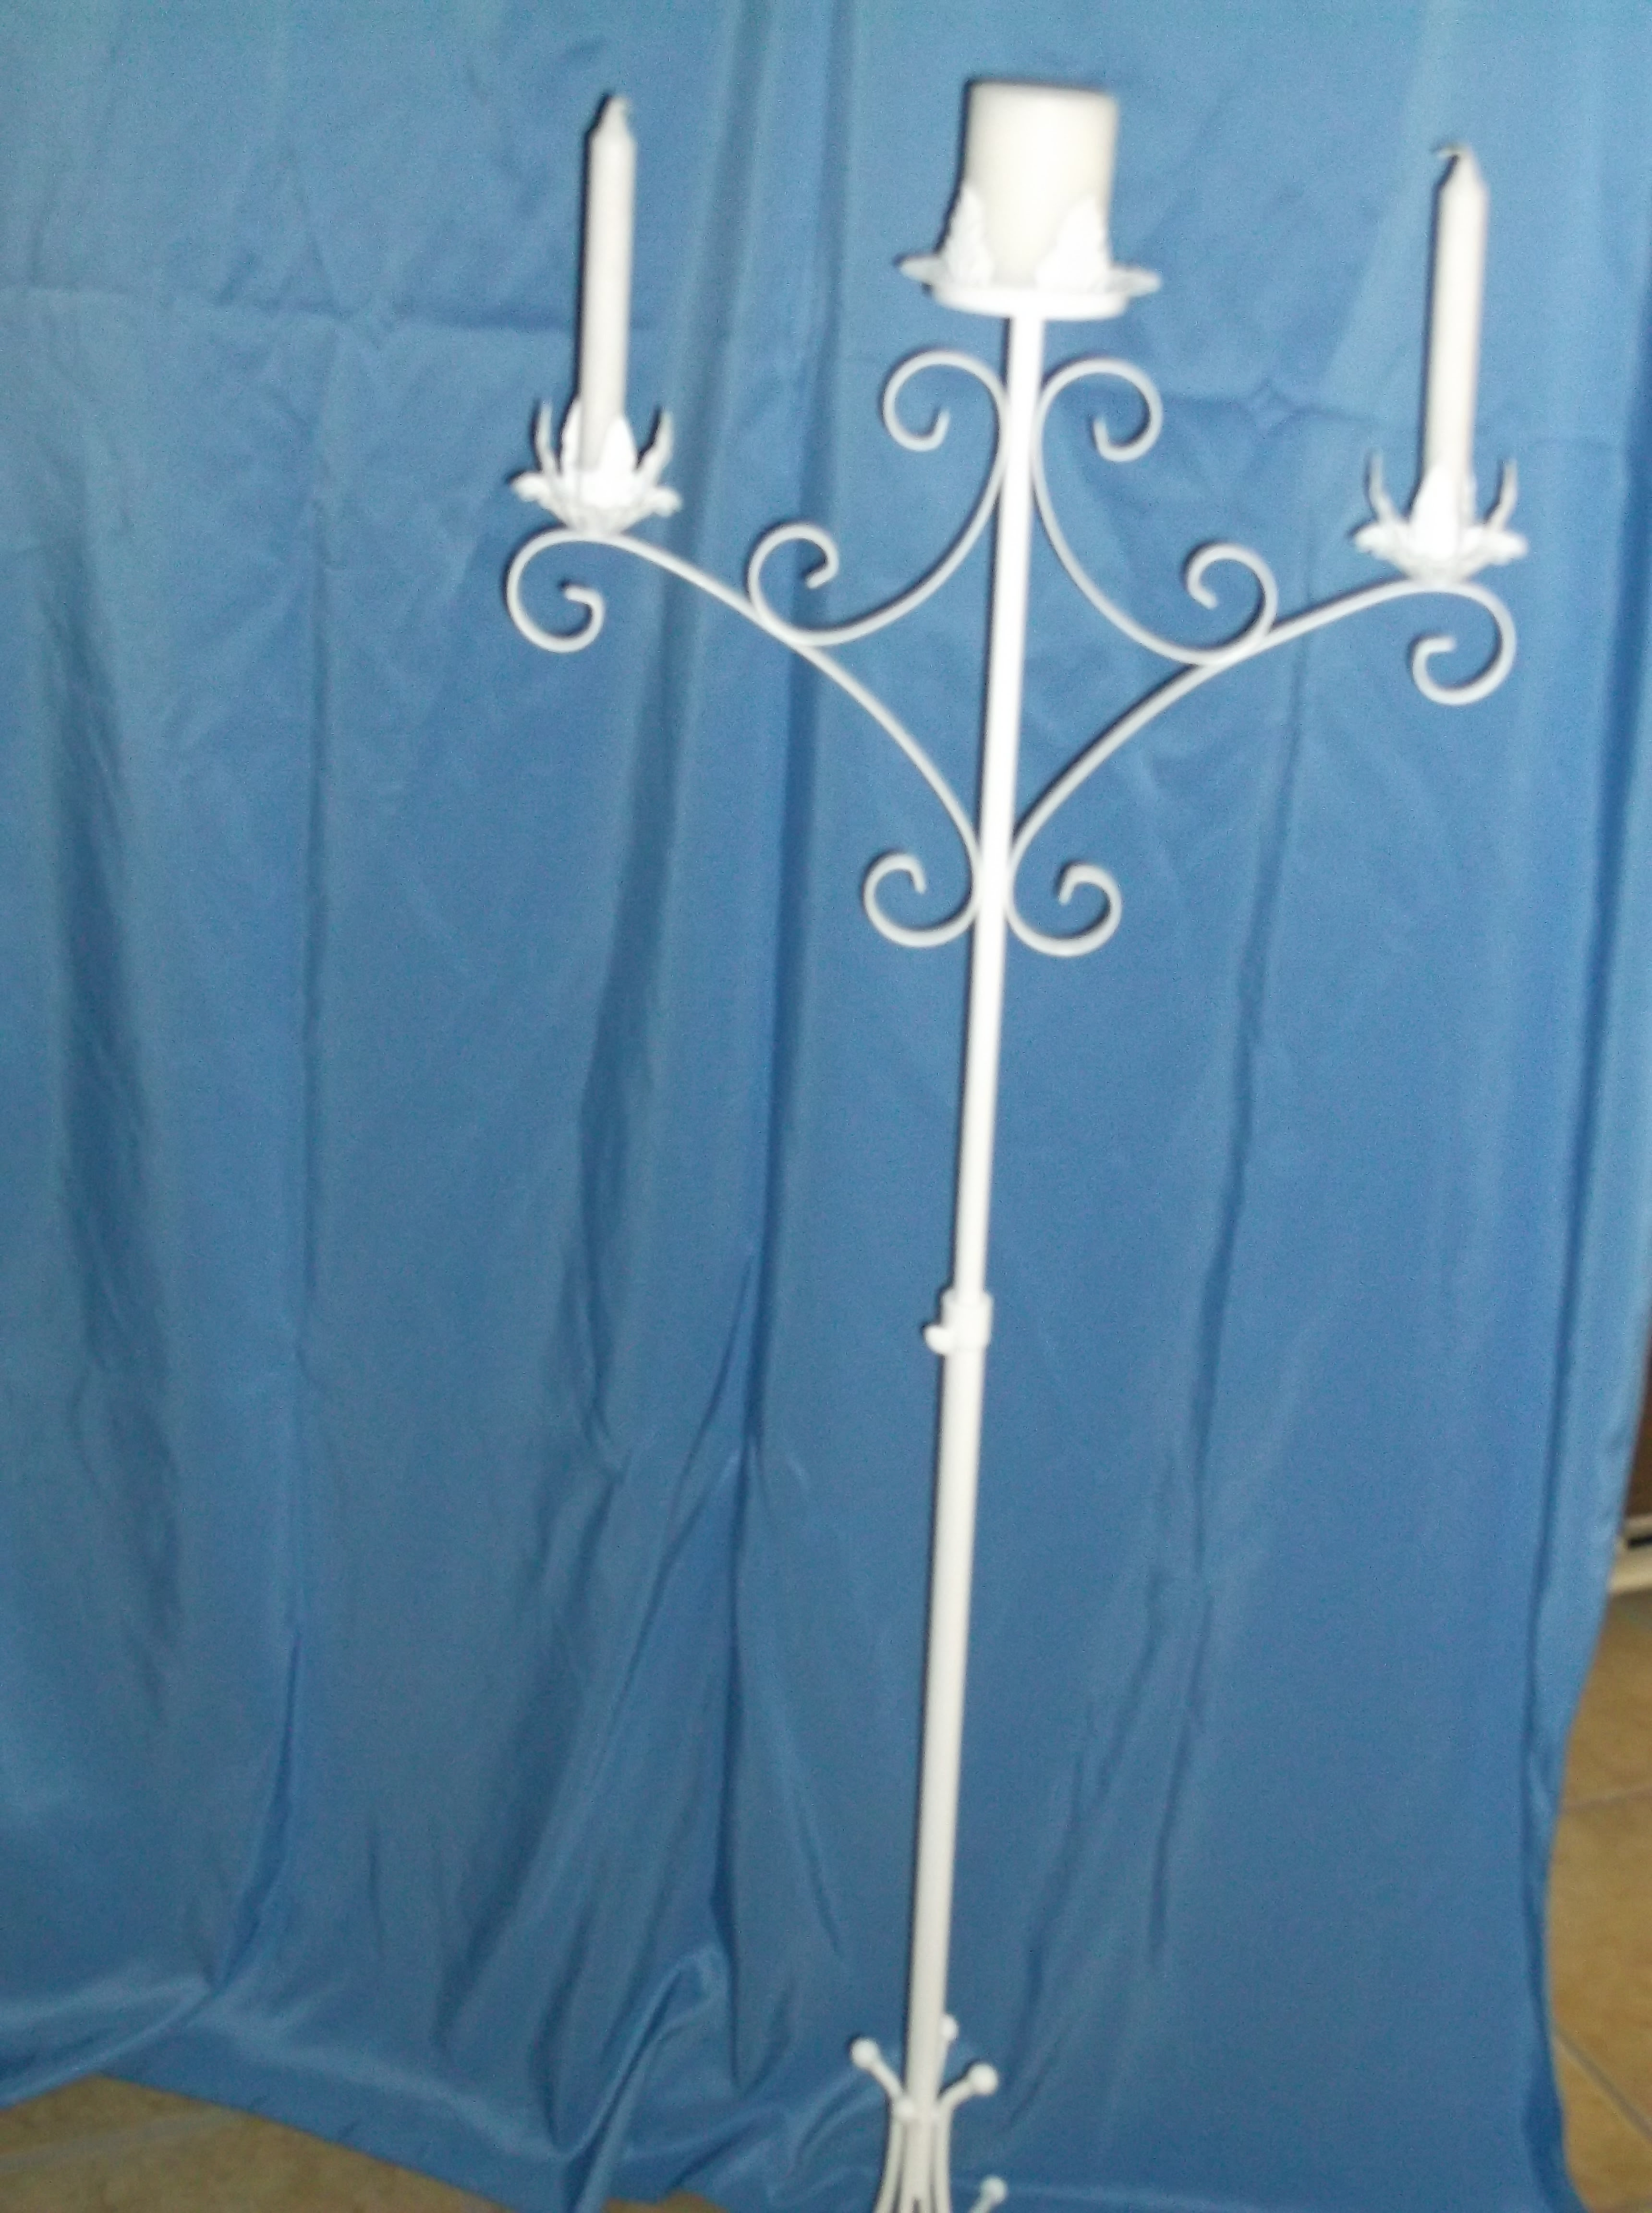 Candle Holders & Stands - Tye-One-J Rentals